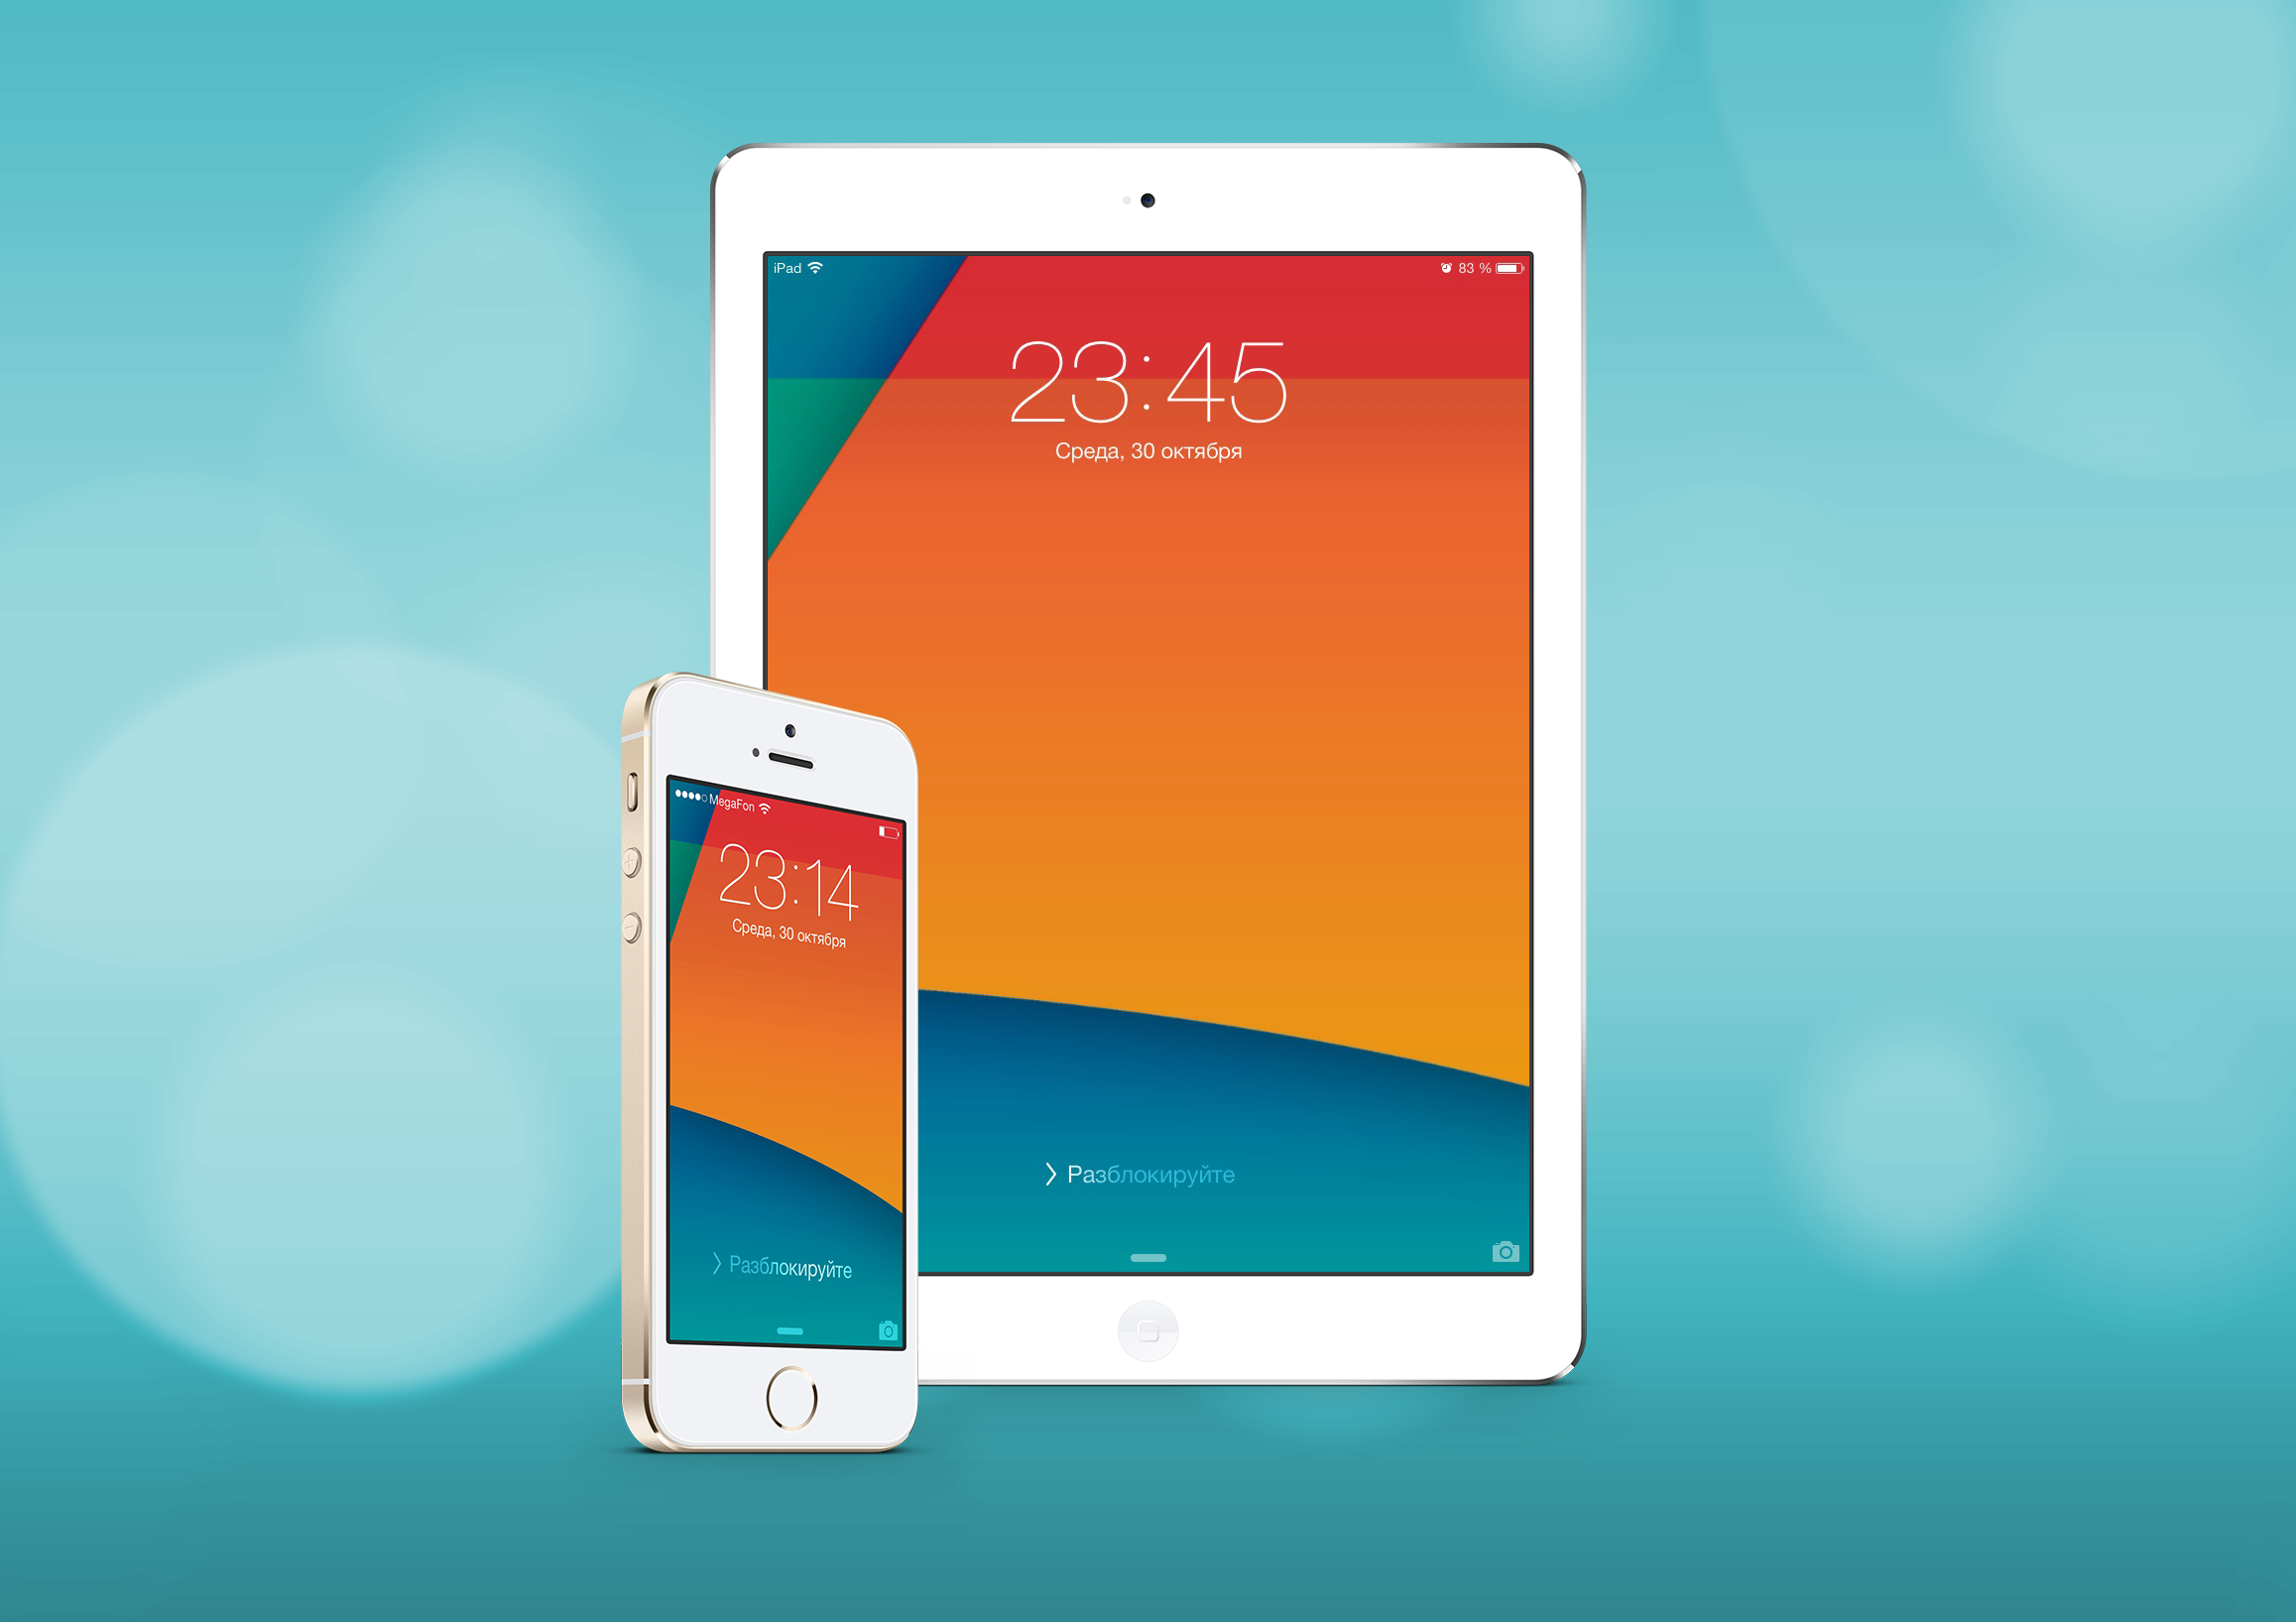 NEXUS Wallpaper For IPhone 5S/5C And IPad Air By BesQ On